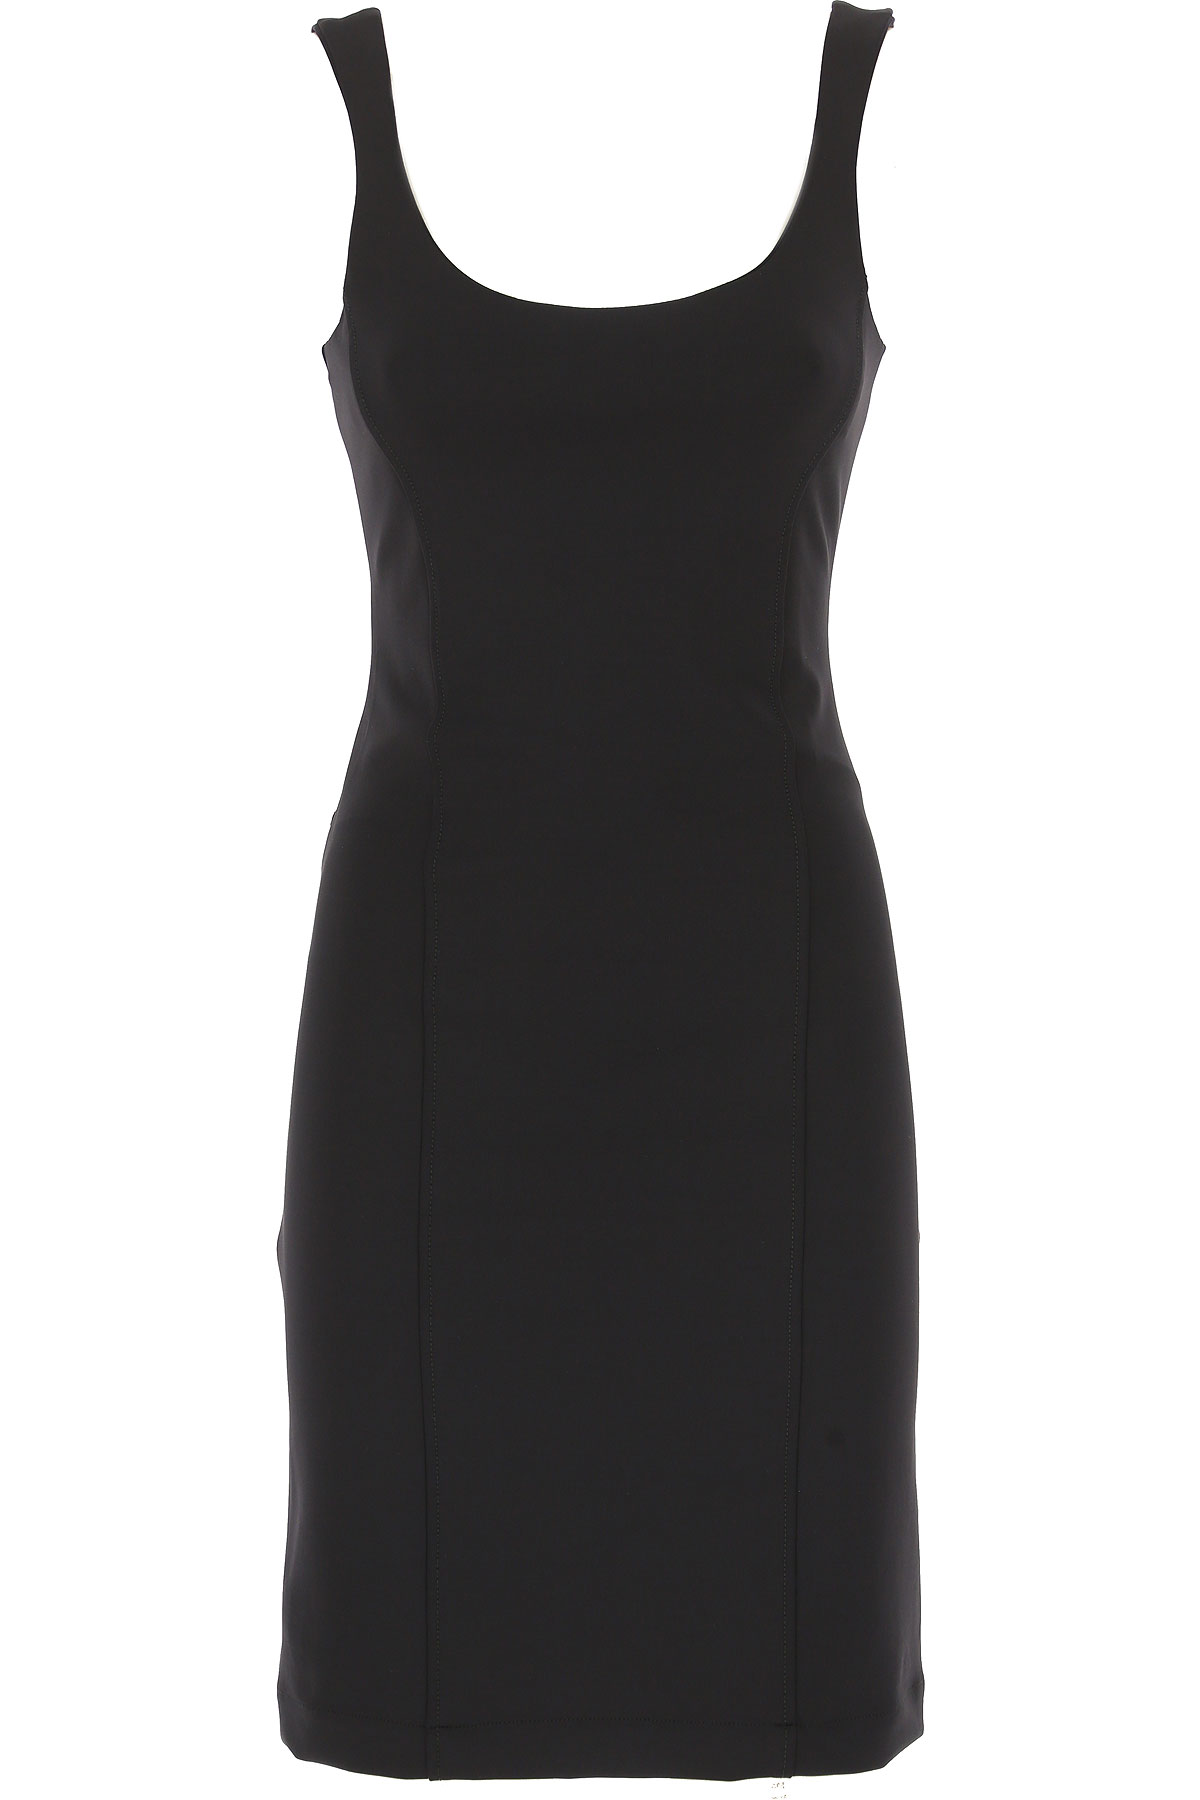 Image of Liviana Conti Dress for Women, Evening Cocktail Party, Black, polyamide, 2017, 2 4 6 8